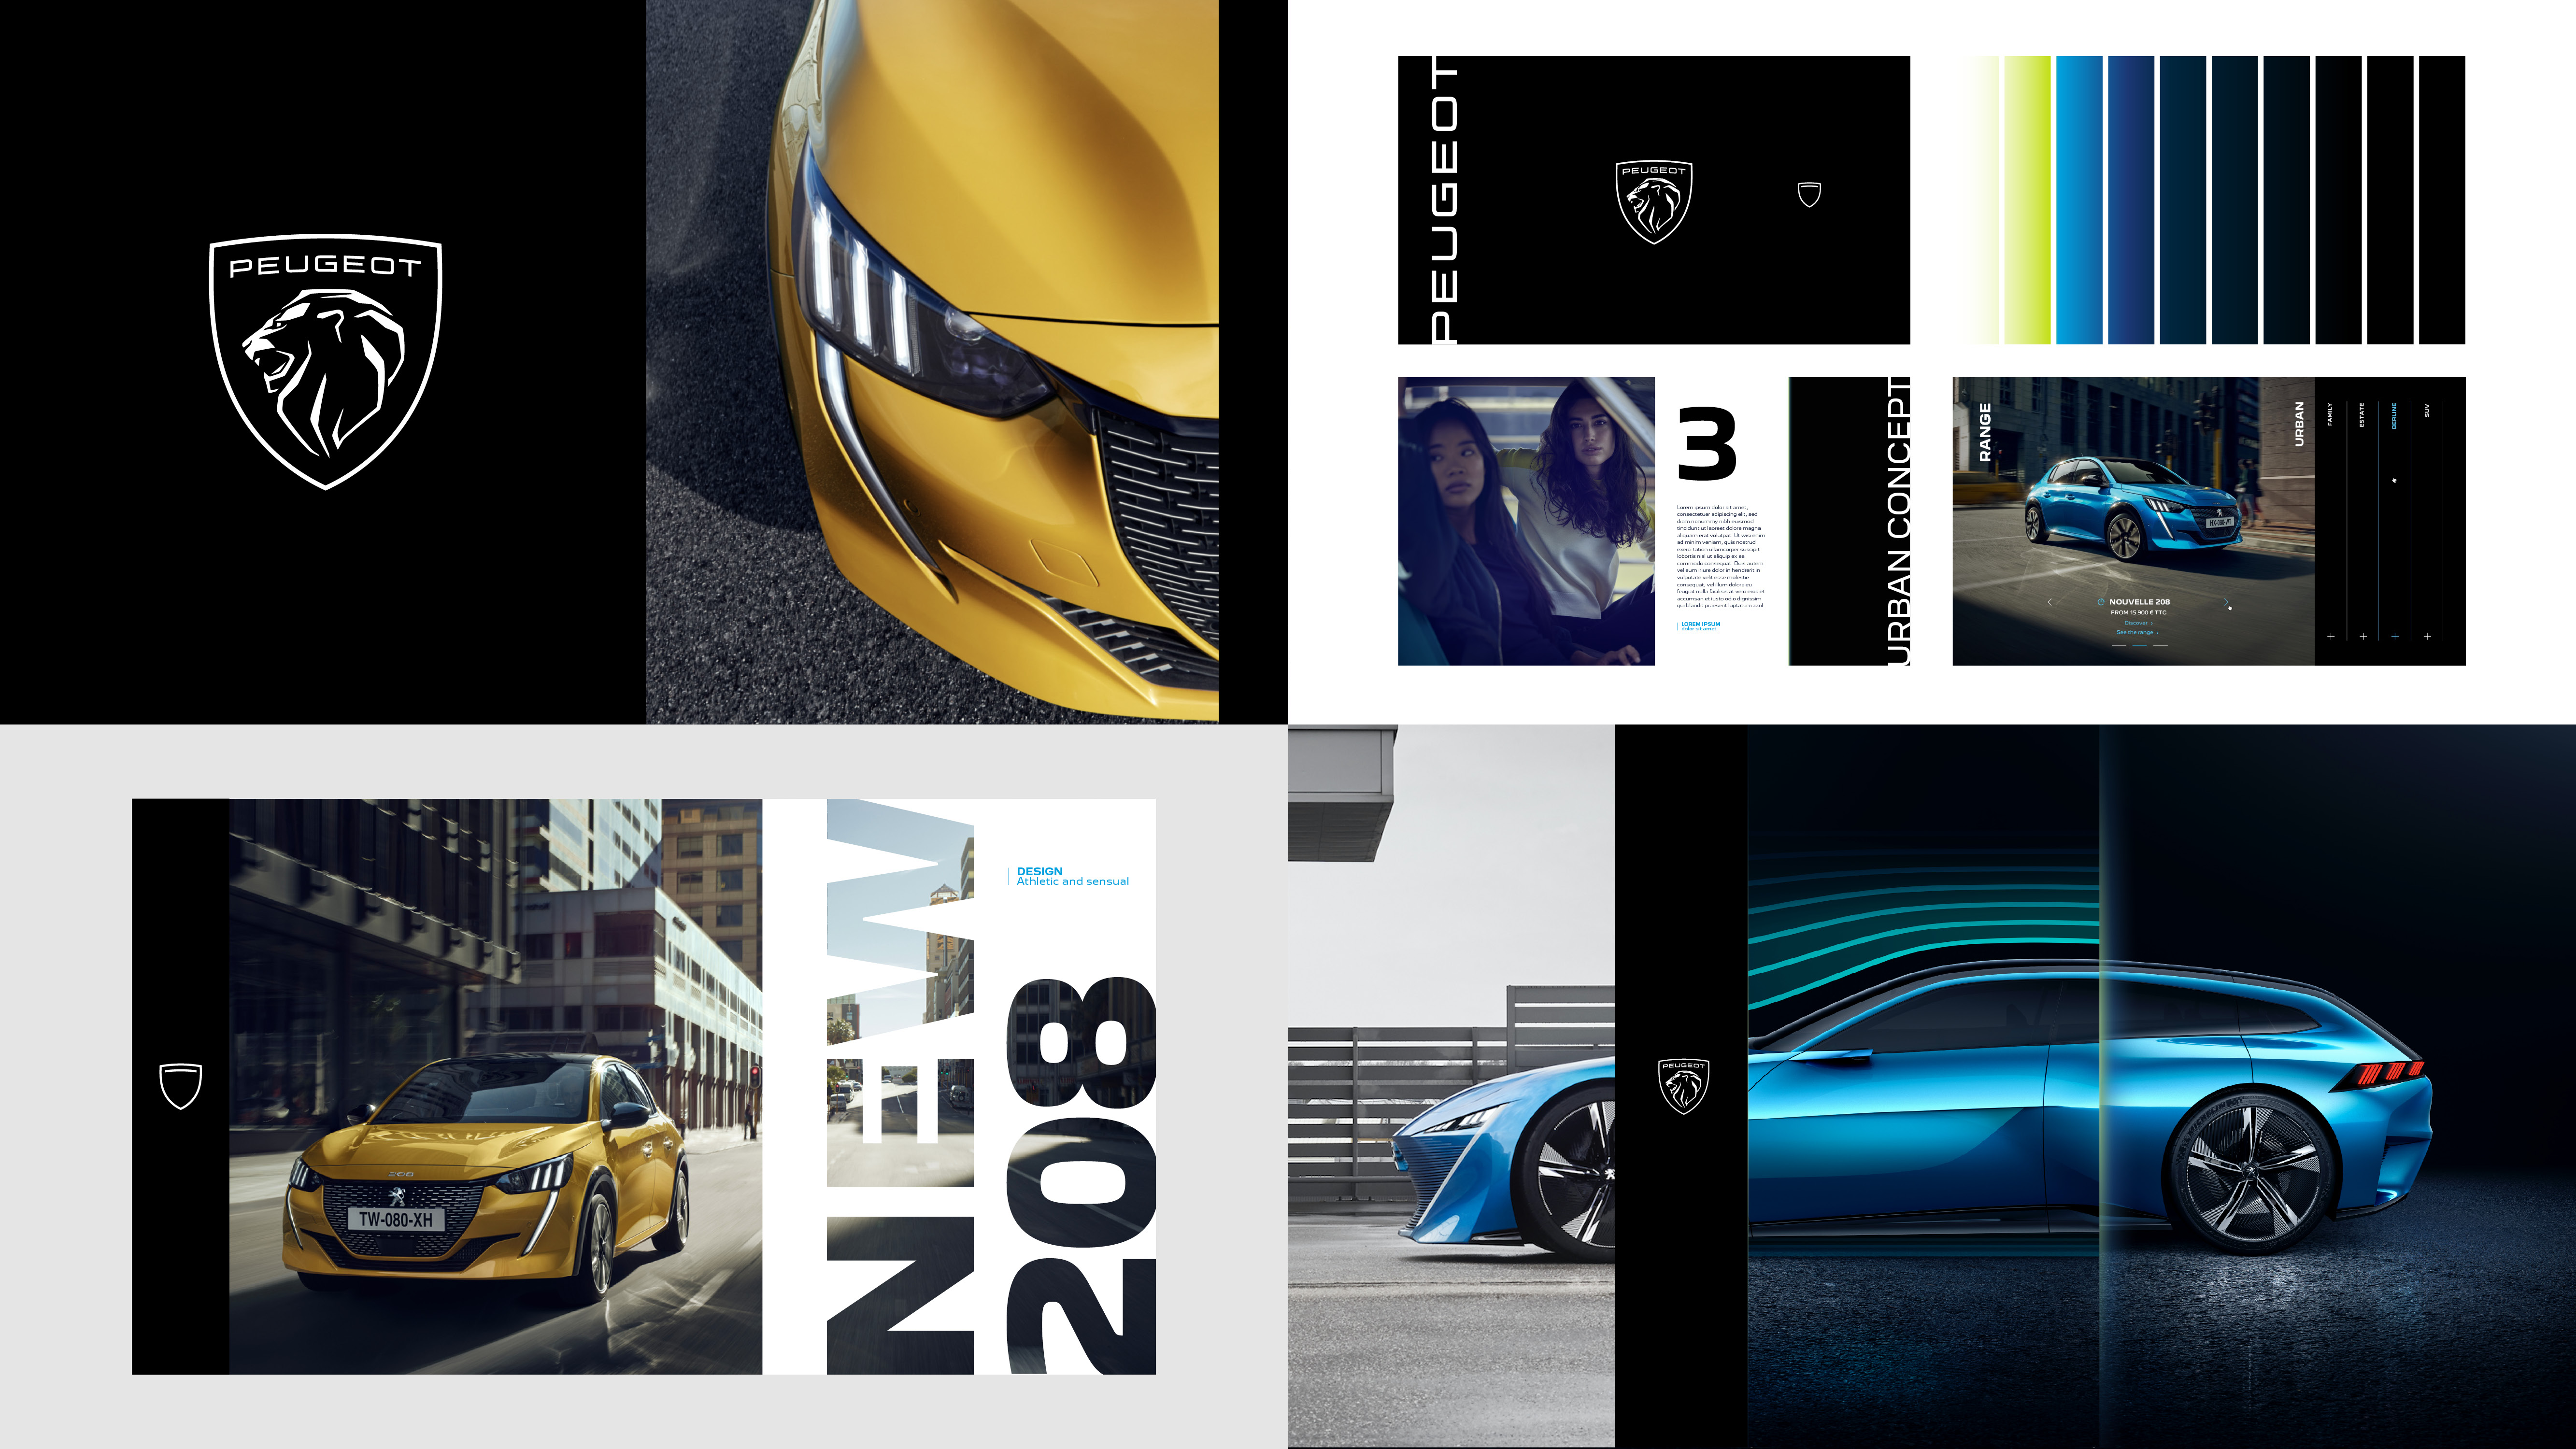 Brand identity - photos - Peugeot new font